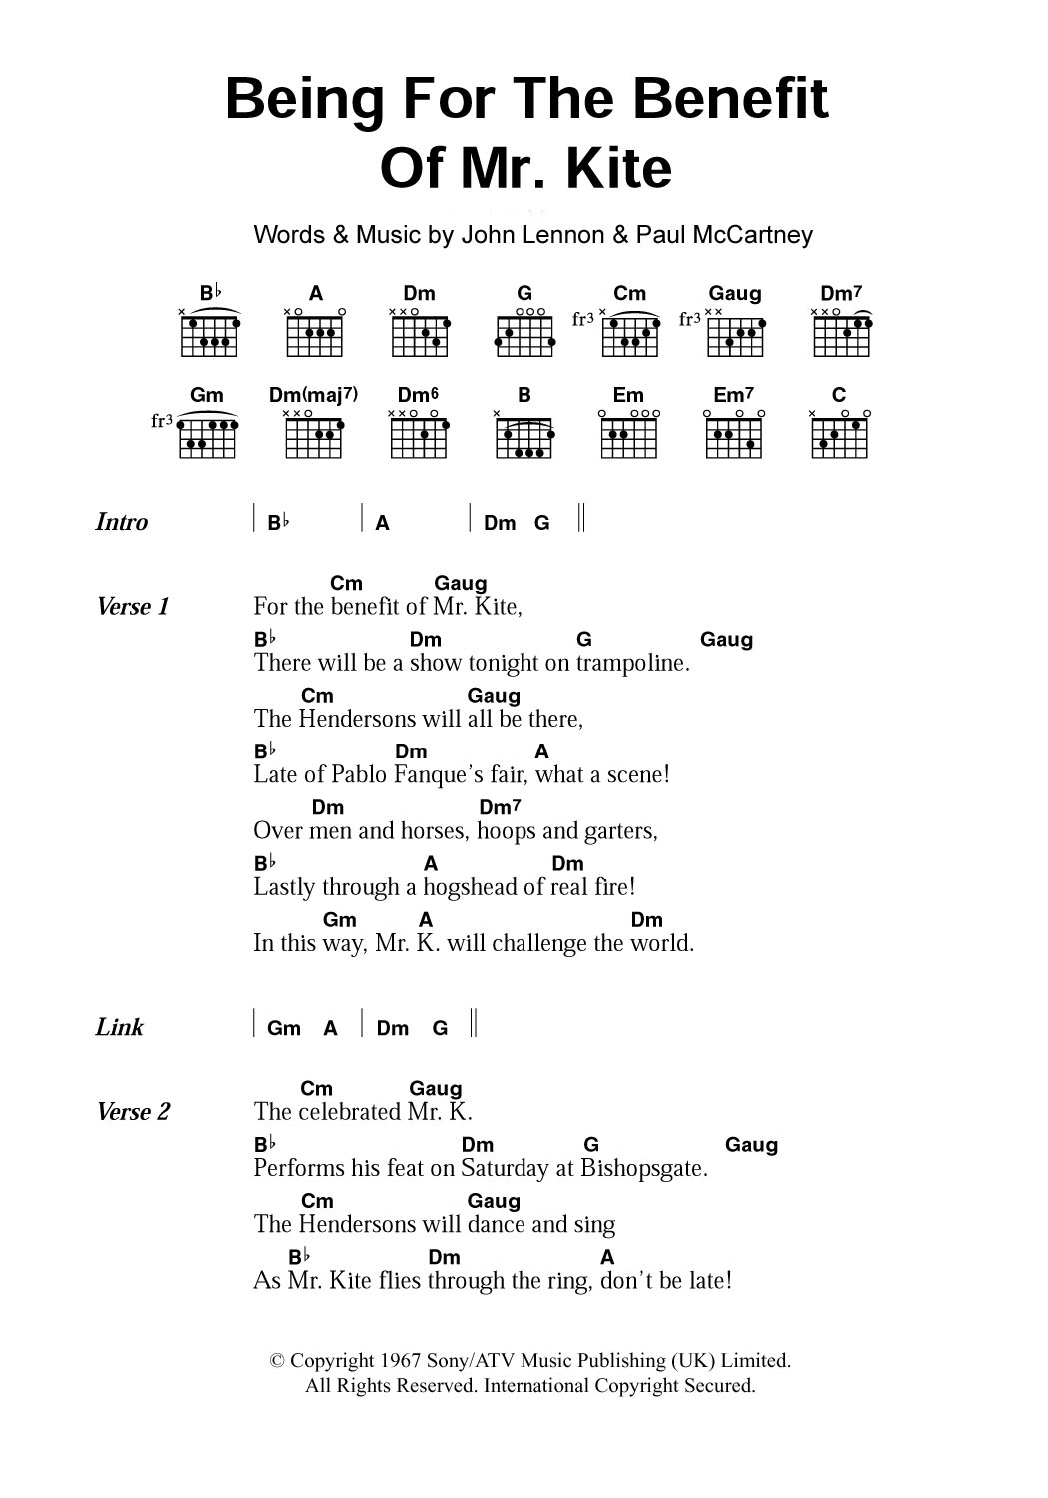 Being For The Benefit Of Mr Kite By The Beatles Guitar Chords